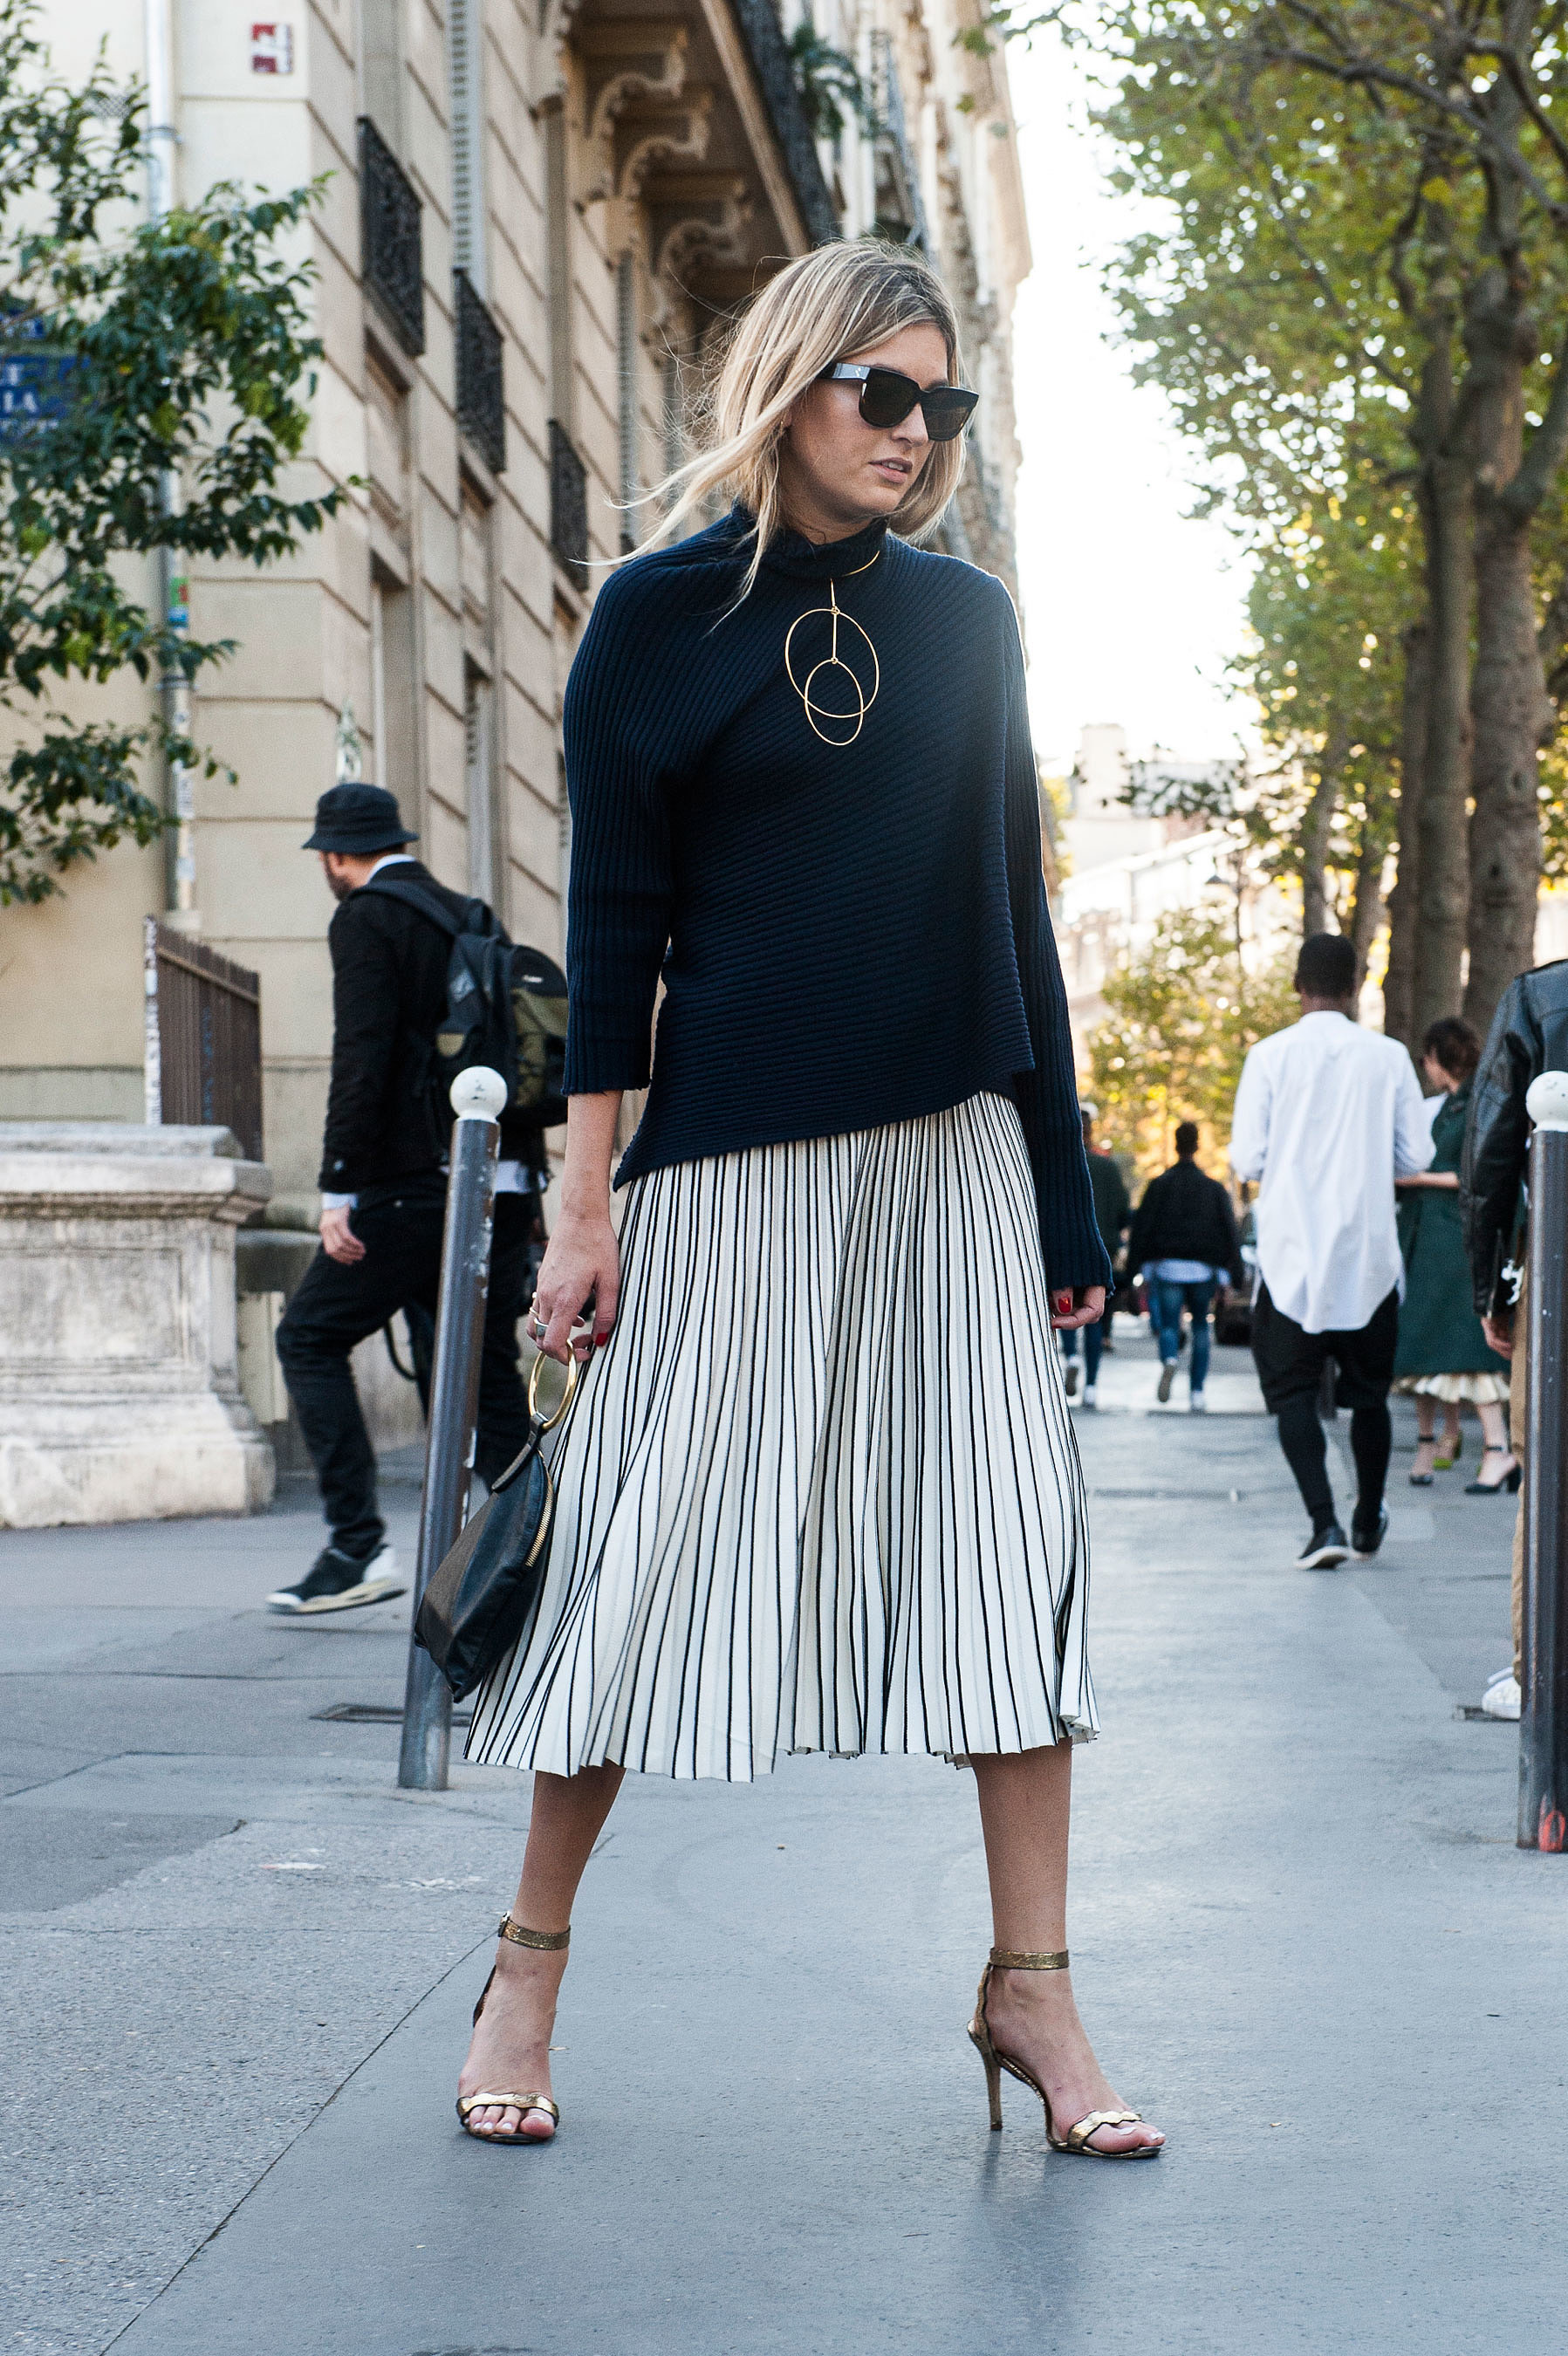 A Slouchy Top Midi Skirt And Heels Combo Is The